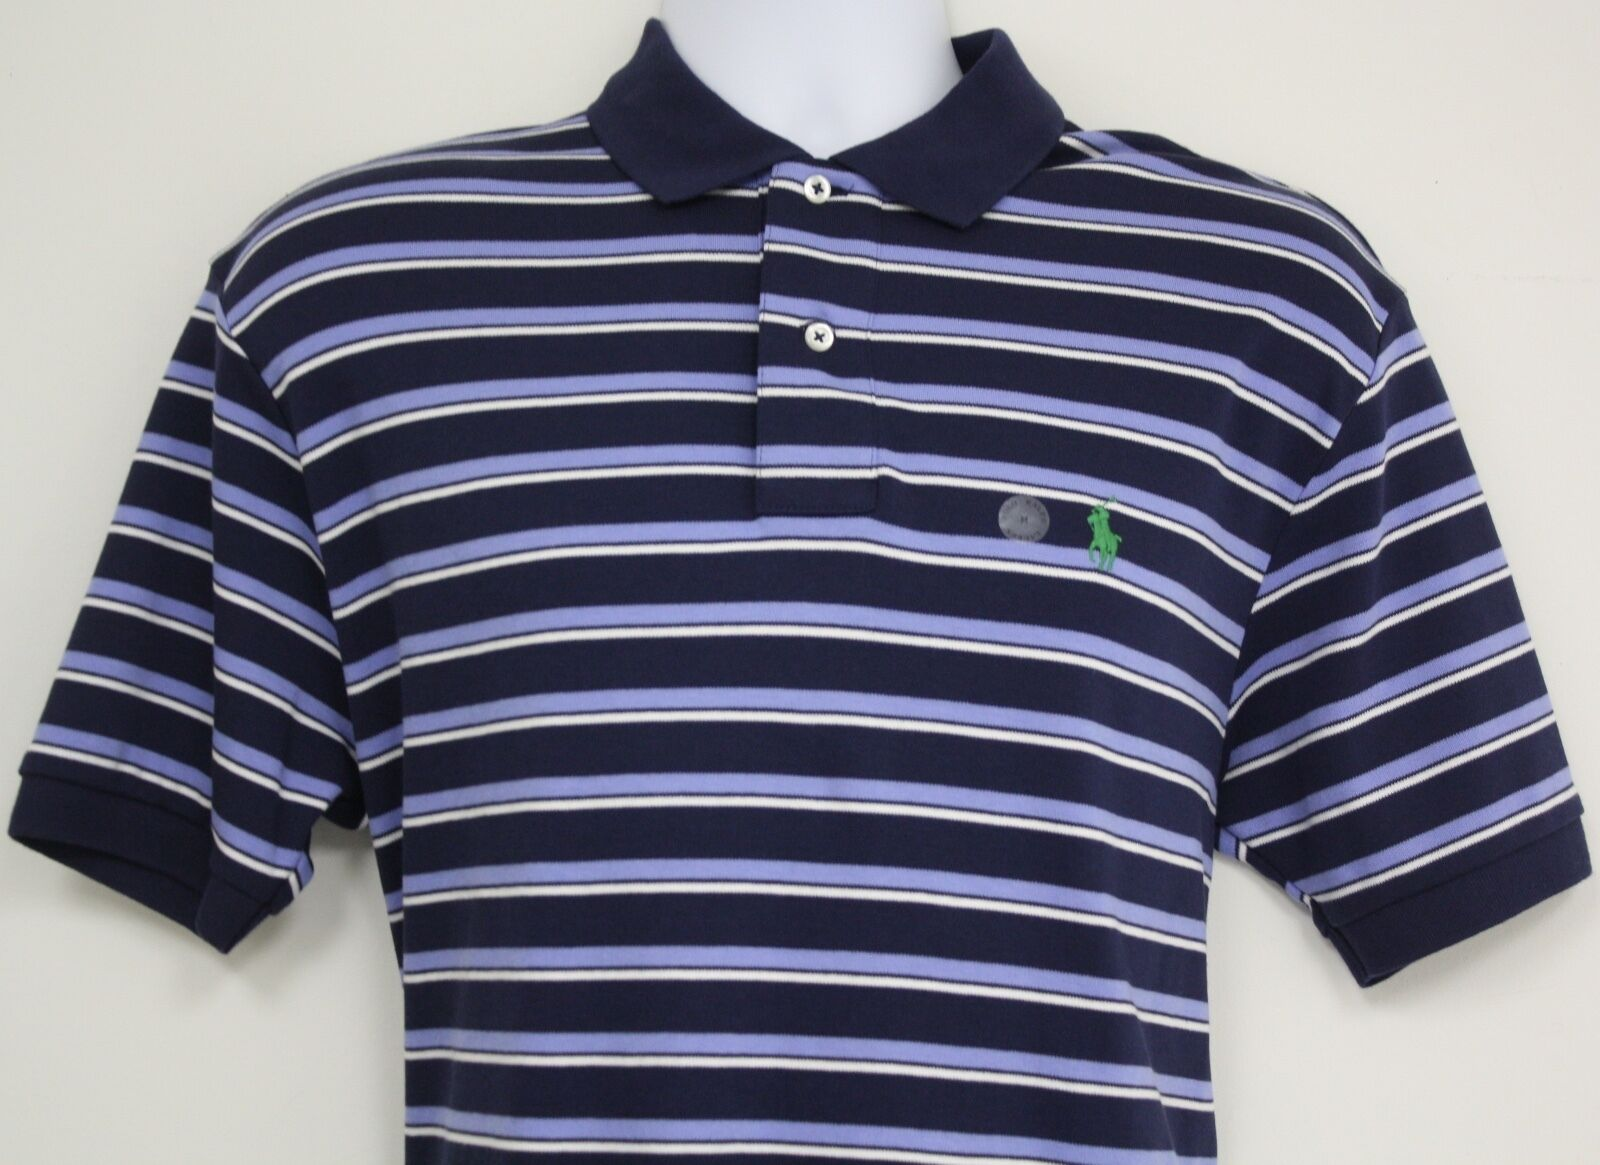 afbc0970 Polo Ralph Lauren shirt Navy bluee White striped shirt Green Pony logo  Smooth natabp8340-Casual Shirts & Tops